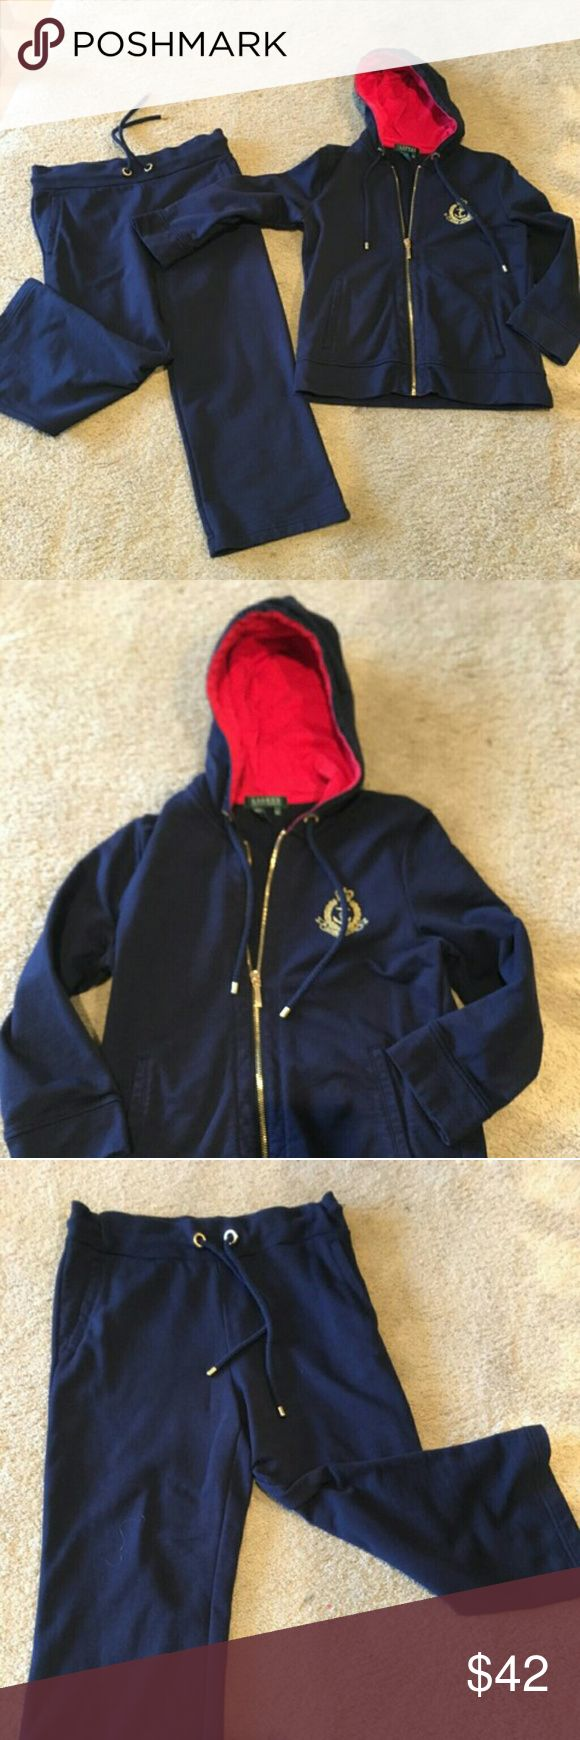 Ralph Lauren Ralph Lauren authentic two-piece jacket and capri set excellent condition comes from a smoke-free home Nautical Style perfect for that upcoming Cruise Ralph Lauren Jackets & Coats Jean Jackets